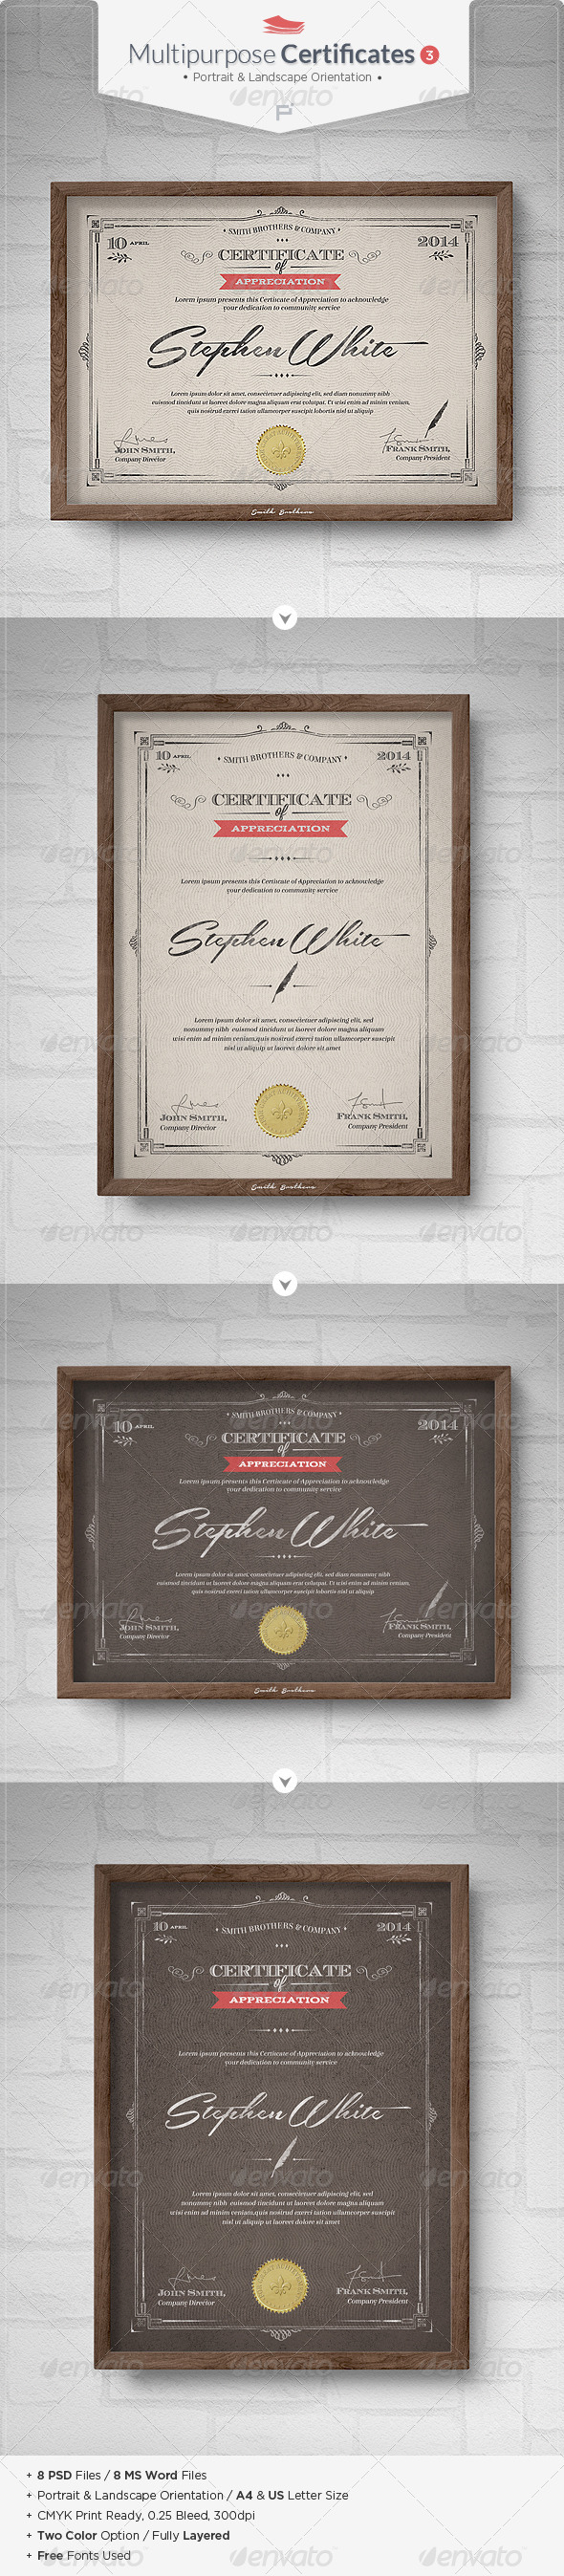 GraphicRiver Multipurpose Certificates III 6949673